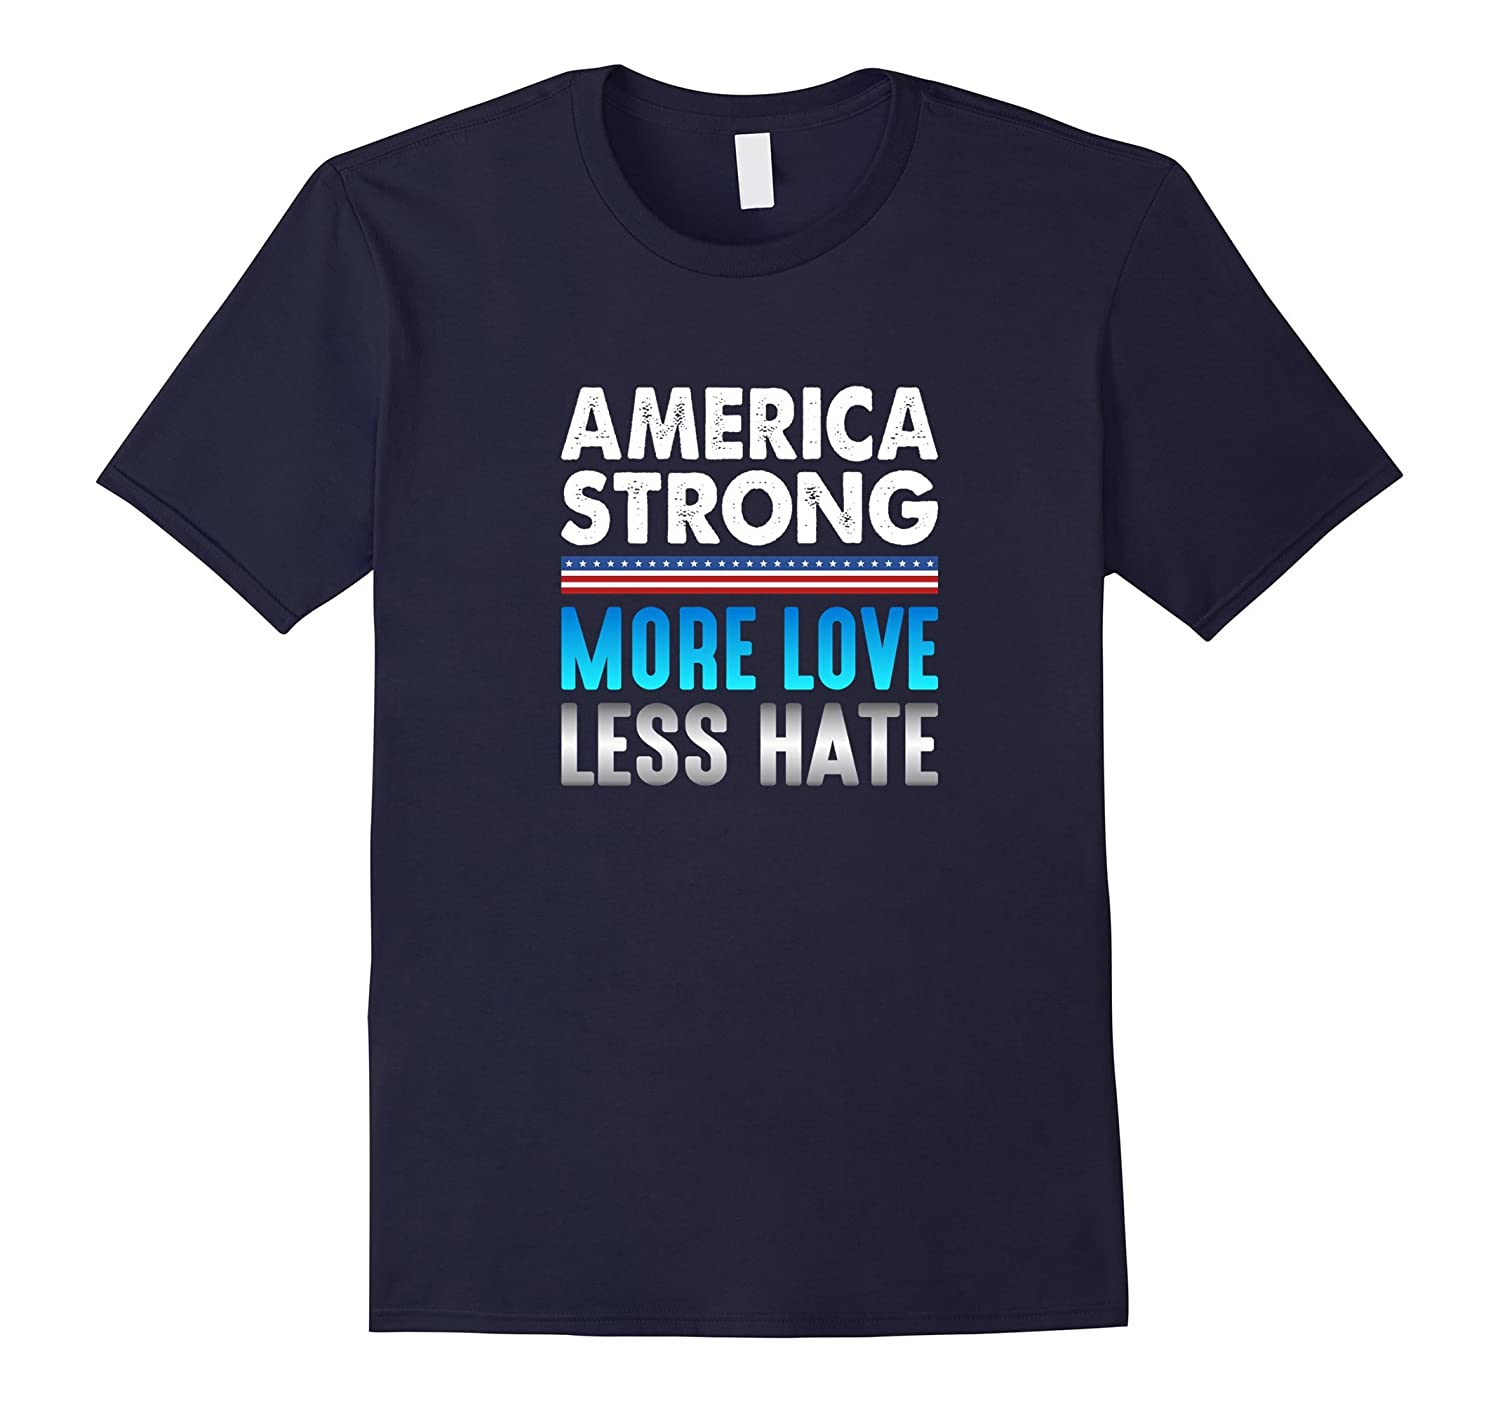 America Strong T-shirt - More Love - Less Hate-CD